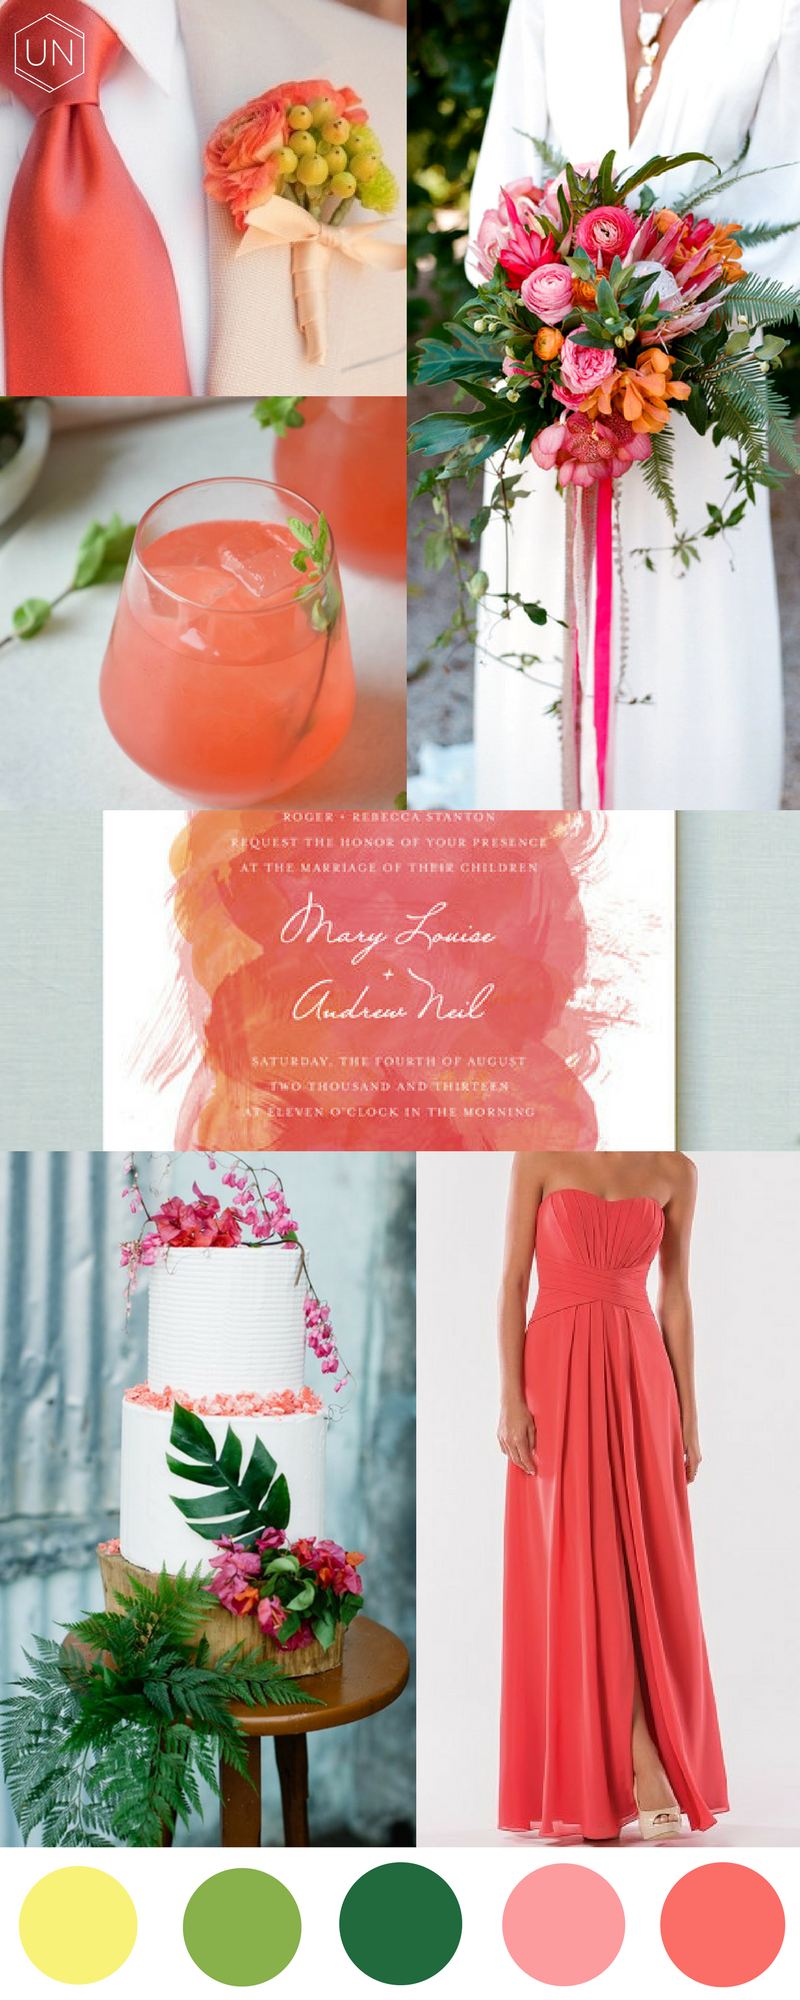 Unbridely - greenery colour palette 'coral'